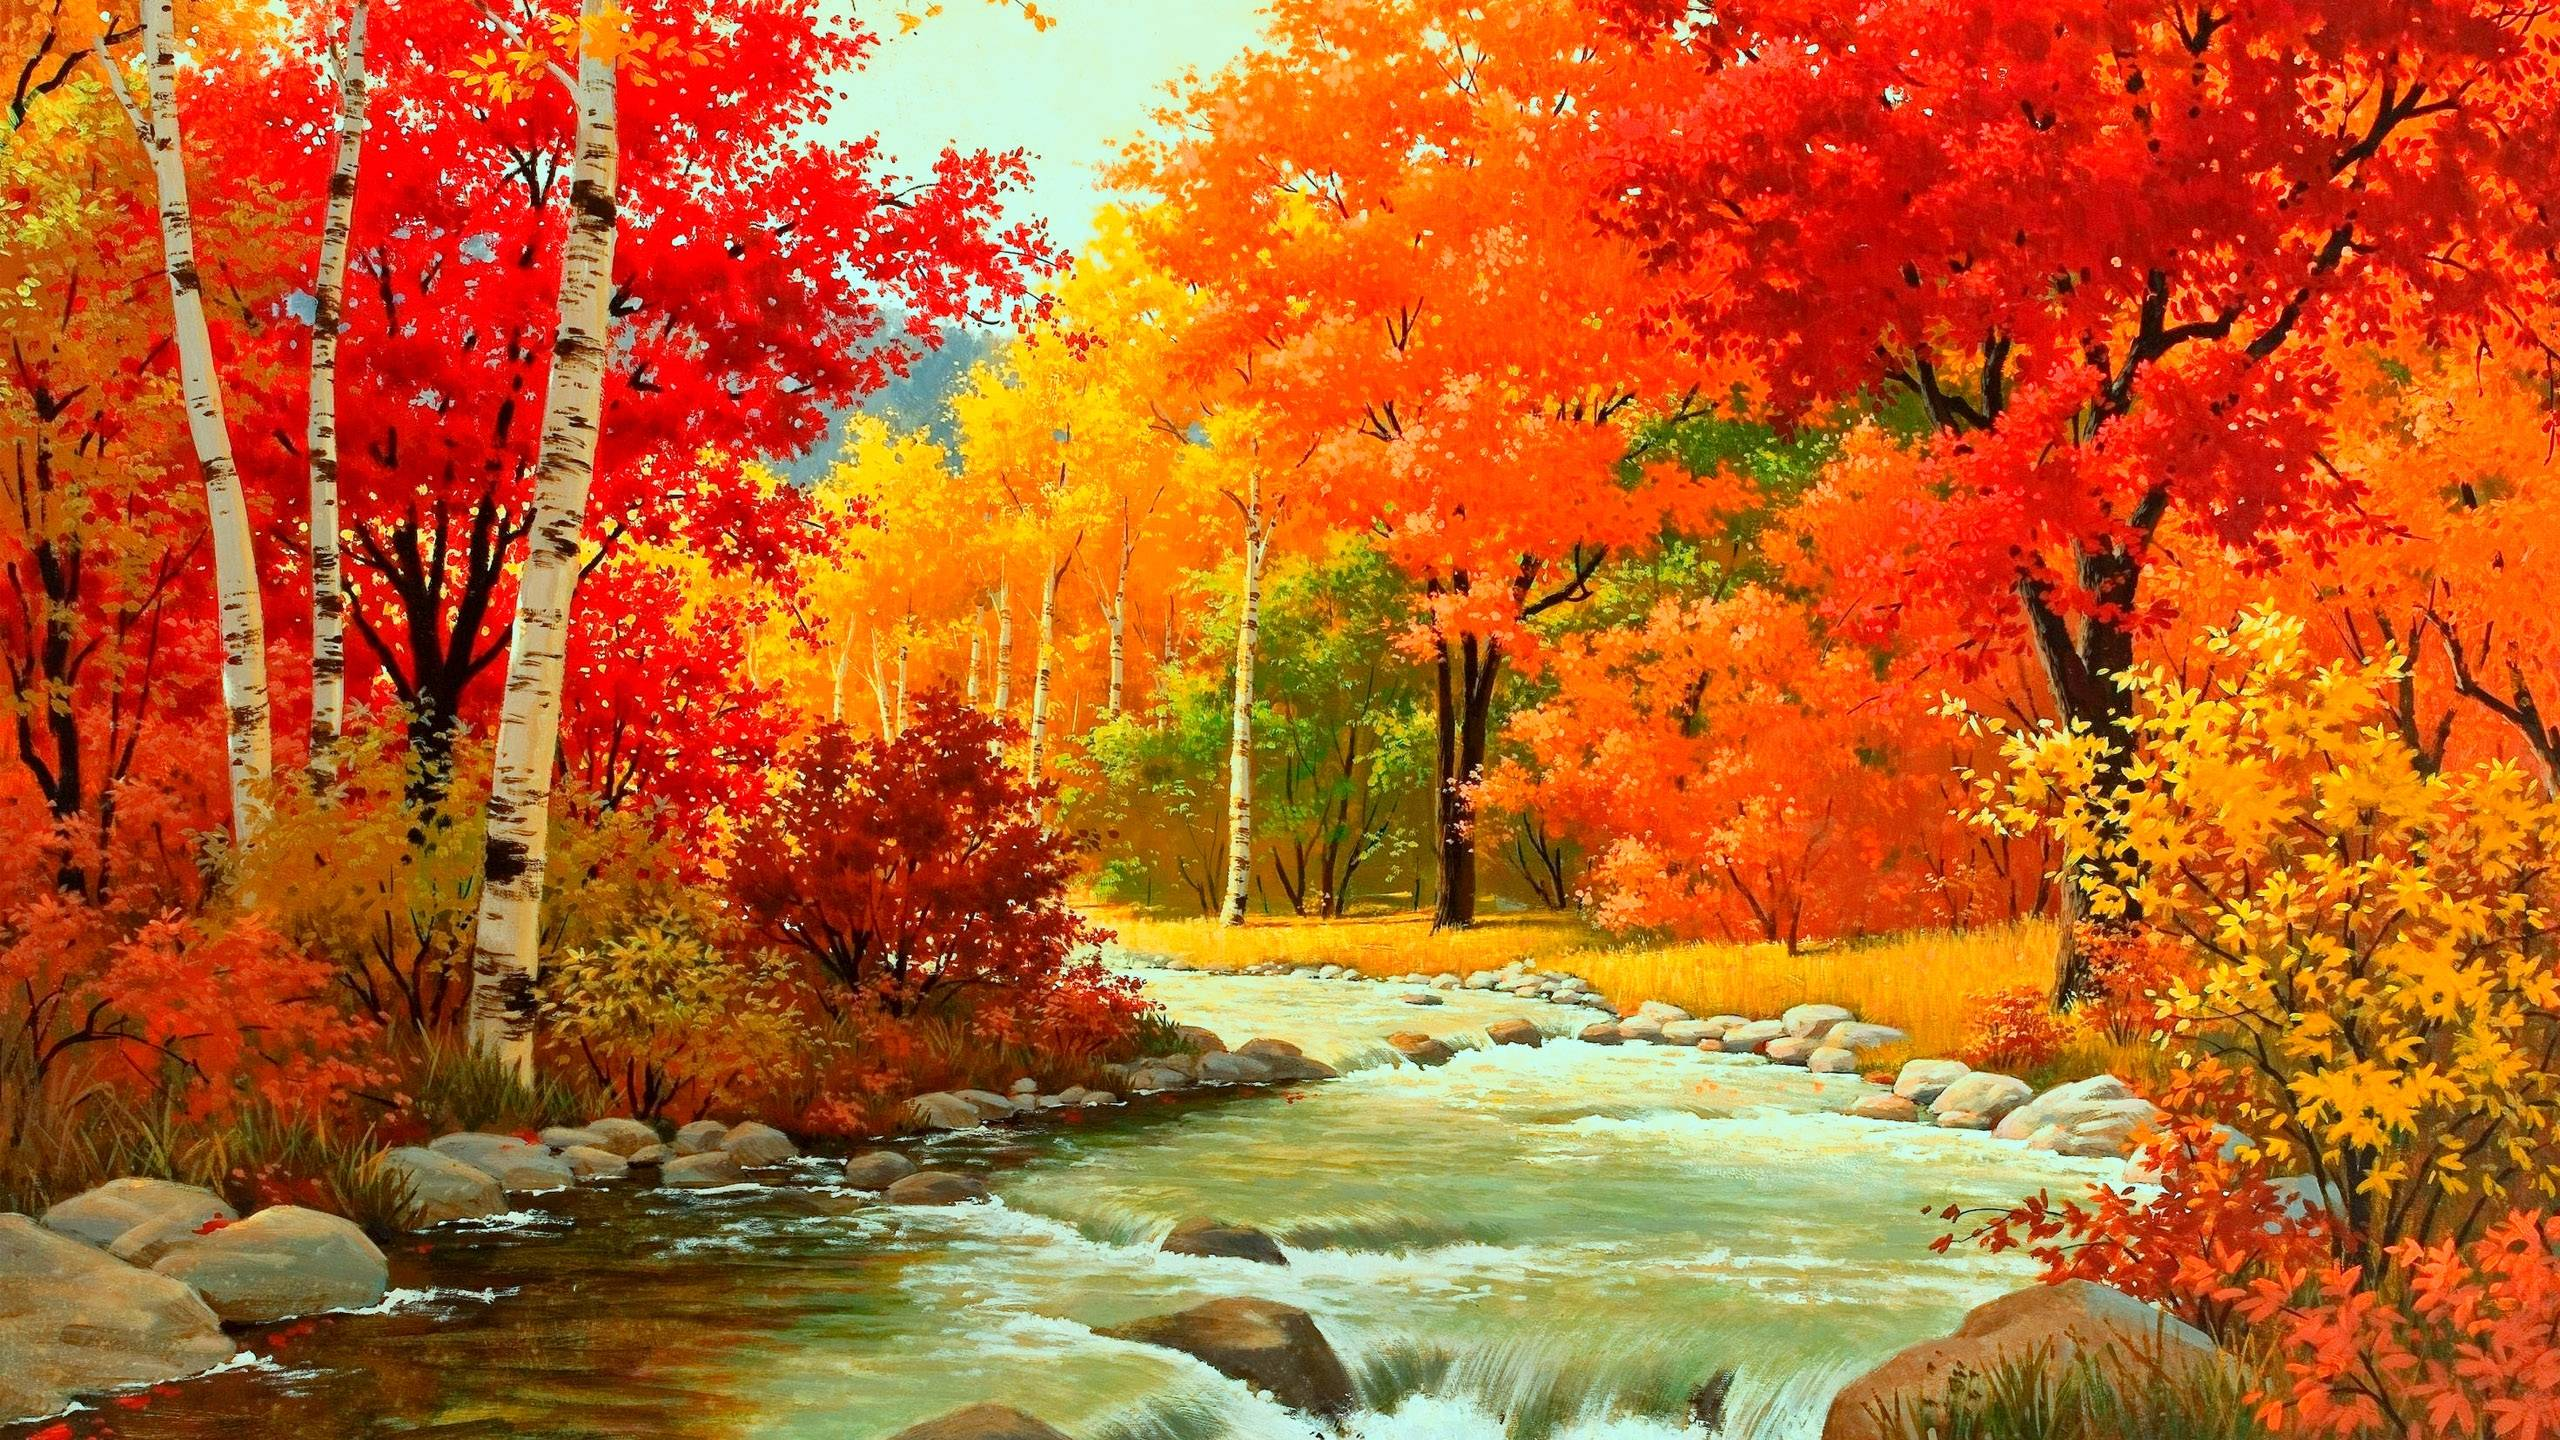 HD Autumn Wallpapers 2560x1440